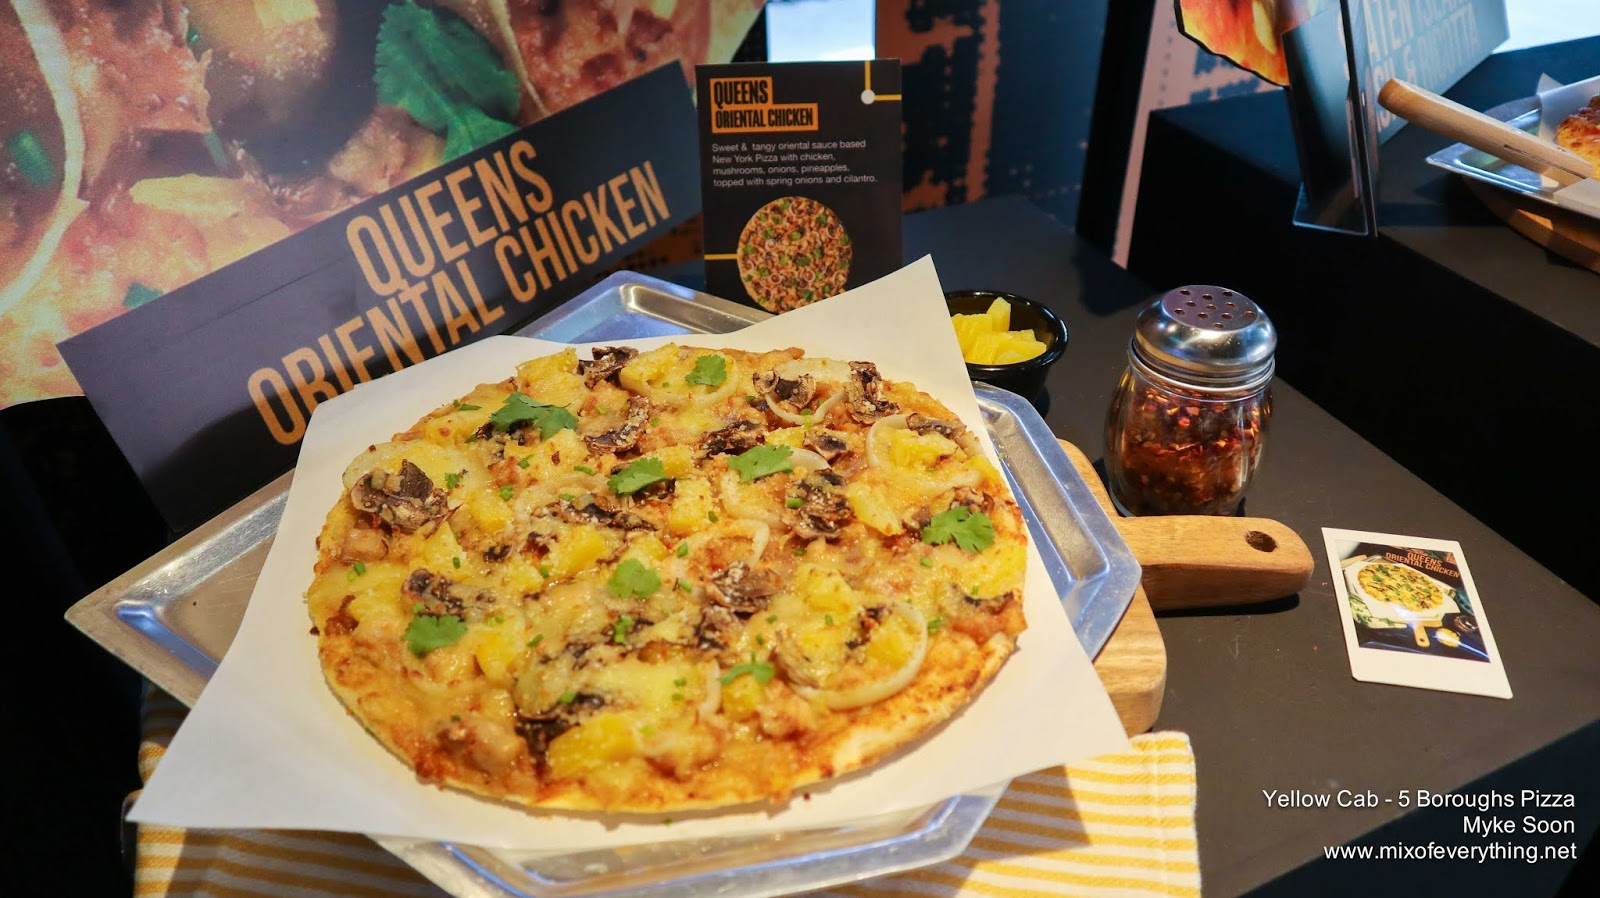 The Queens Oriental Chicken Pizza Brings A Palate Of Unique Flavor Profile With Its Combination Of Chicken Mushrooms Onions And Pineapple